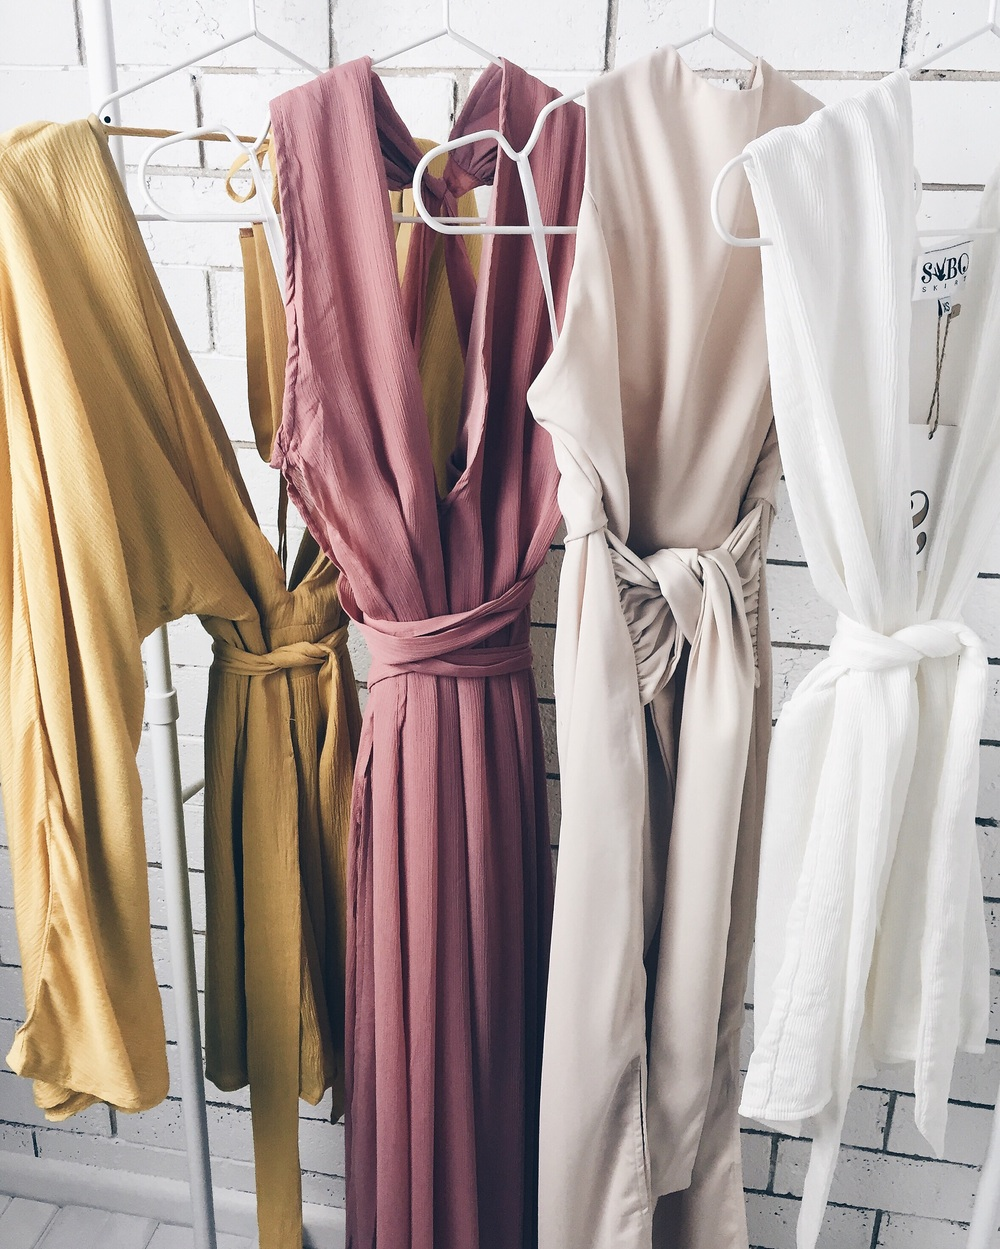 All pieces from Sabo Skirt (prices from left to right)  Anika Dress AU$68  Indie-Rose Dress AU$128  Sia Dress AU$78  Plunge Playsuit $128